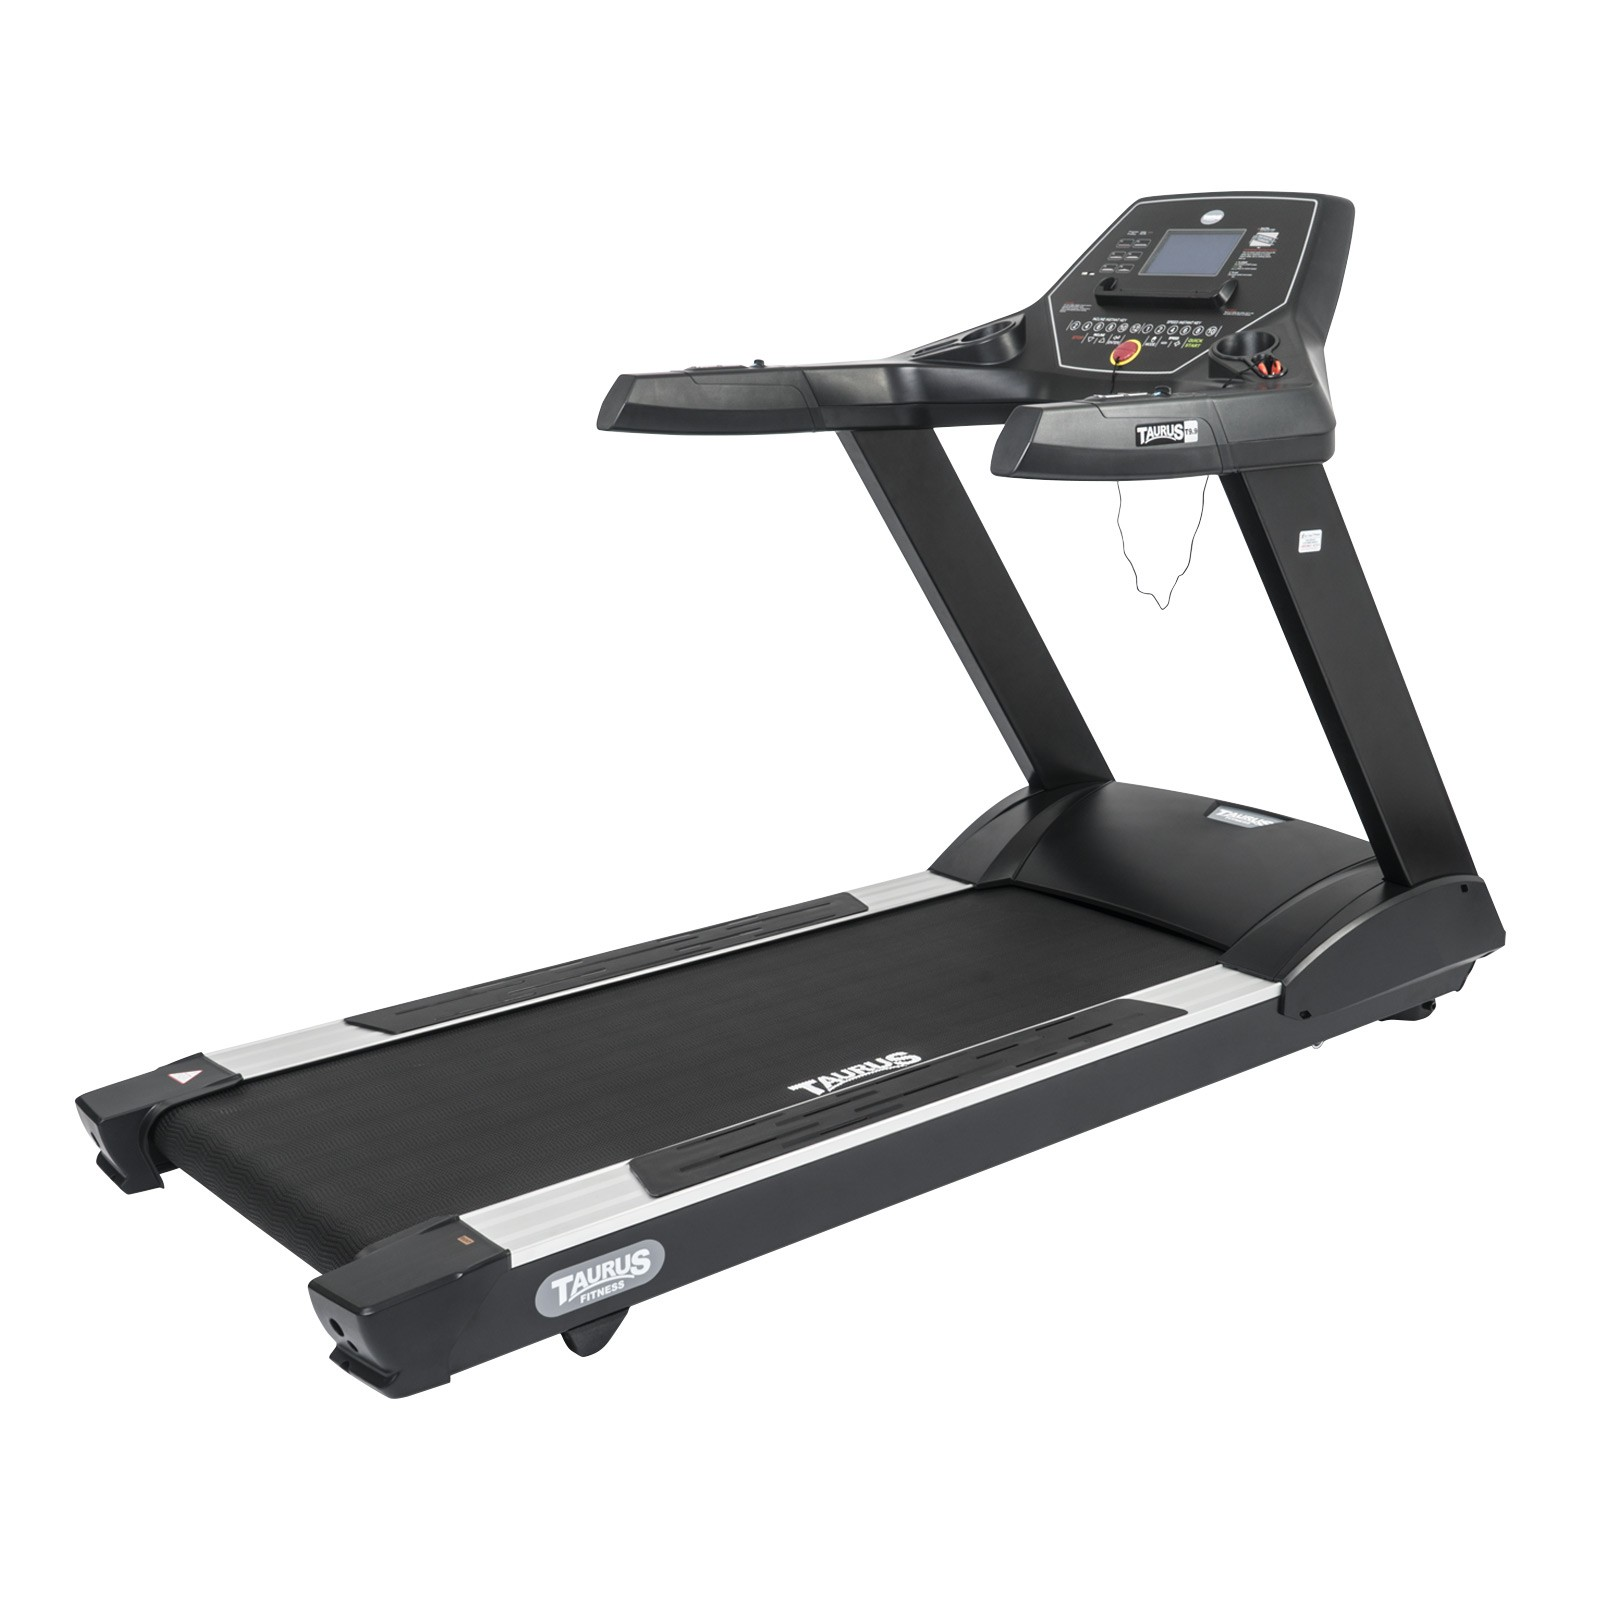 Taurus treadmill T9.9 buy with 160 customer ratings - Sport-Tiedje